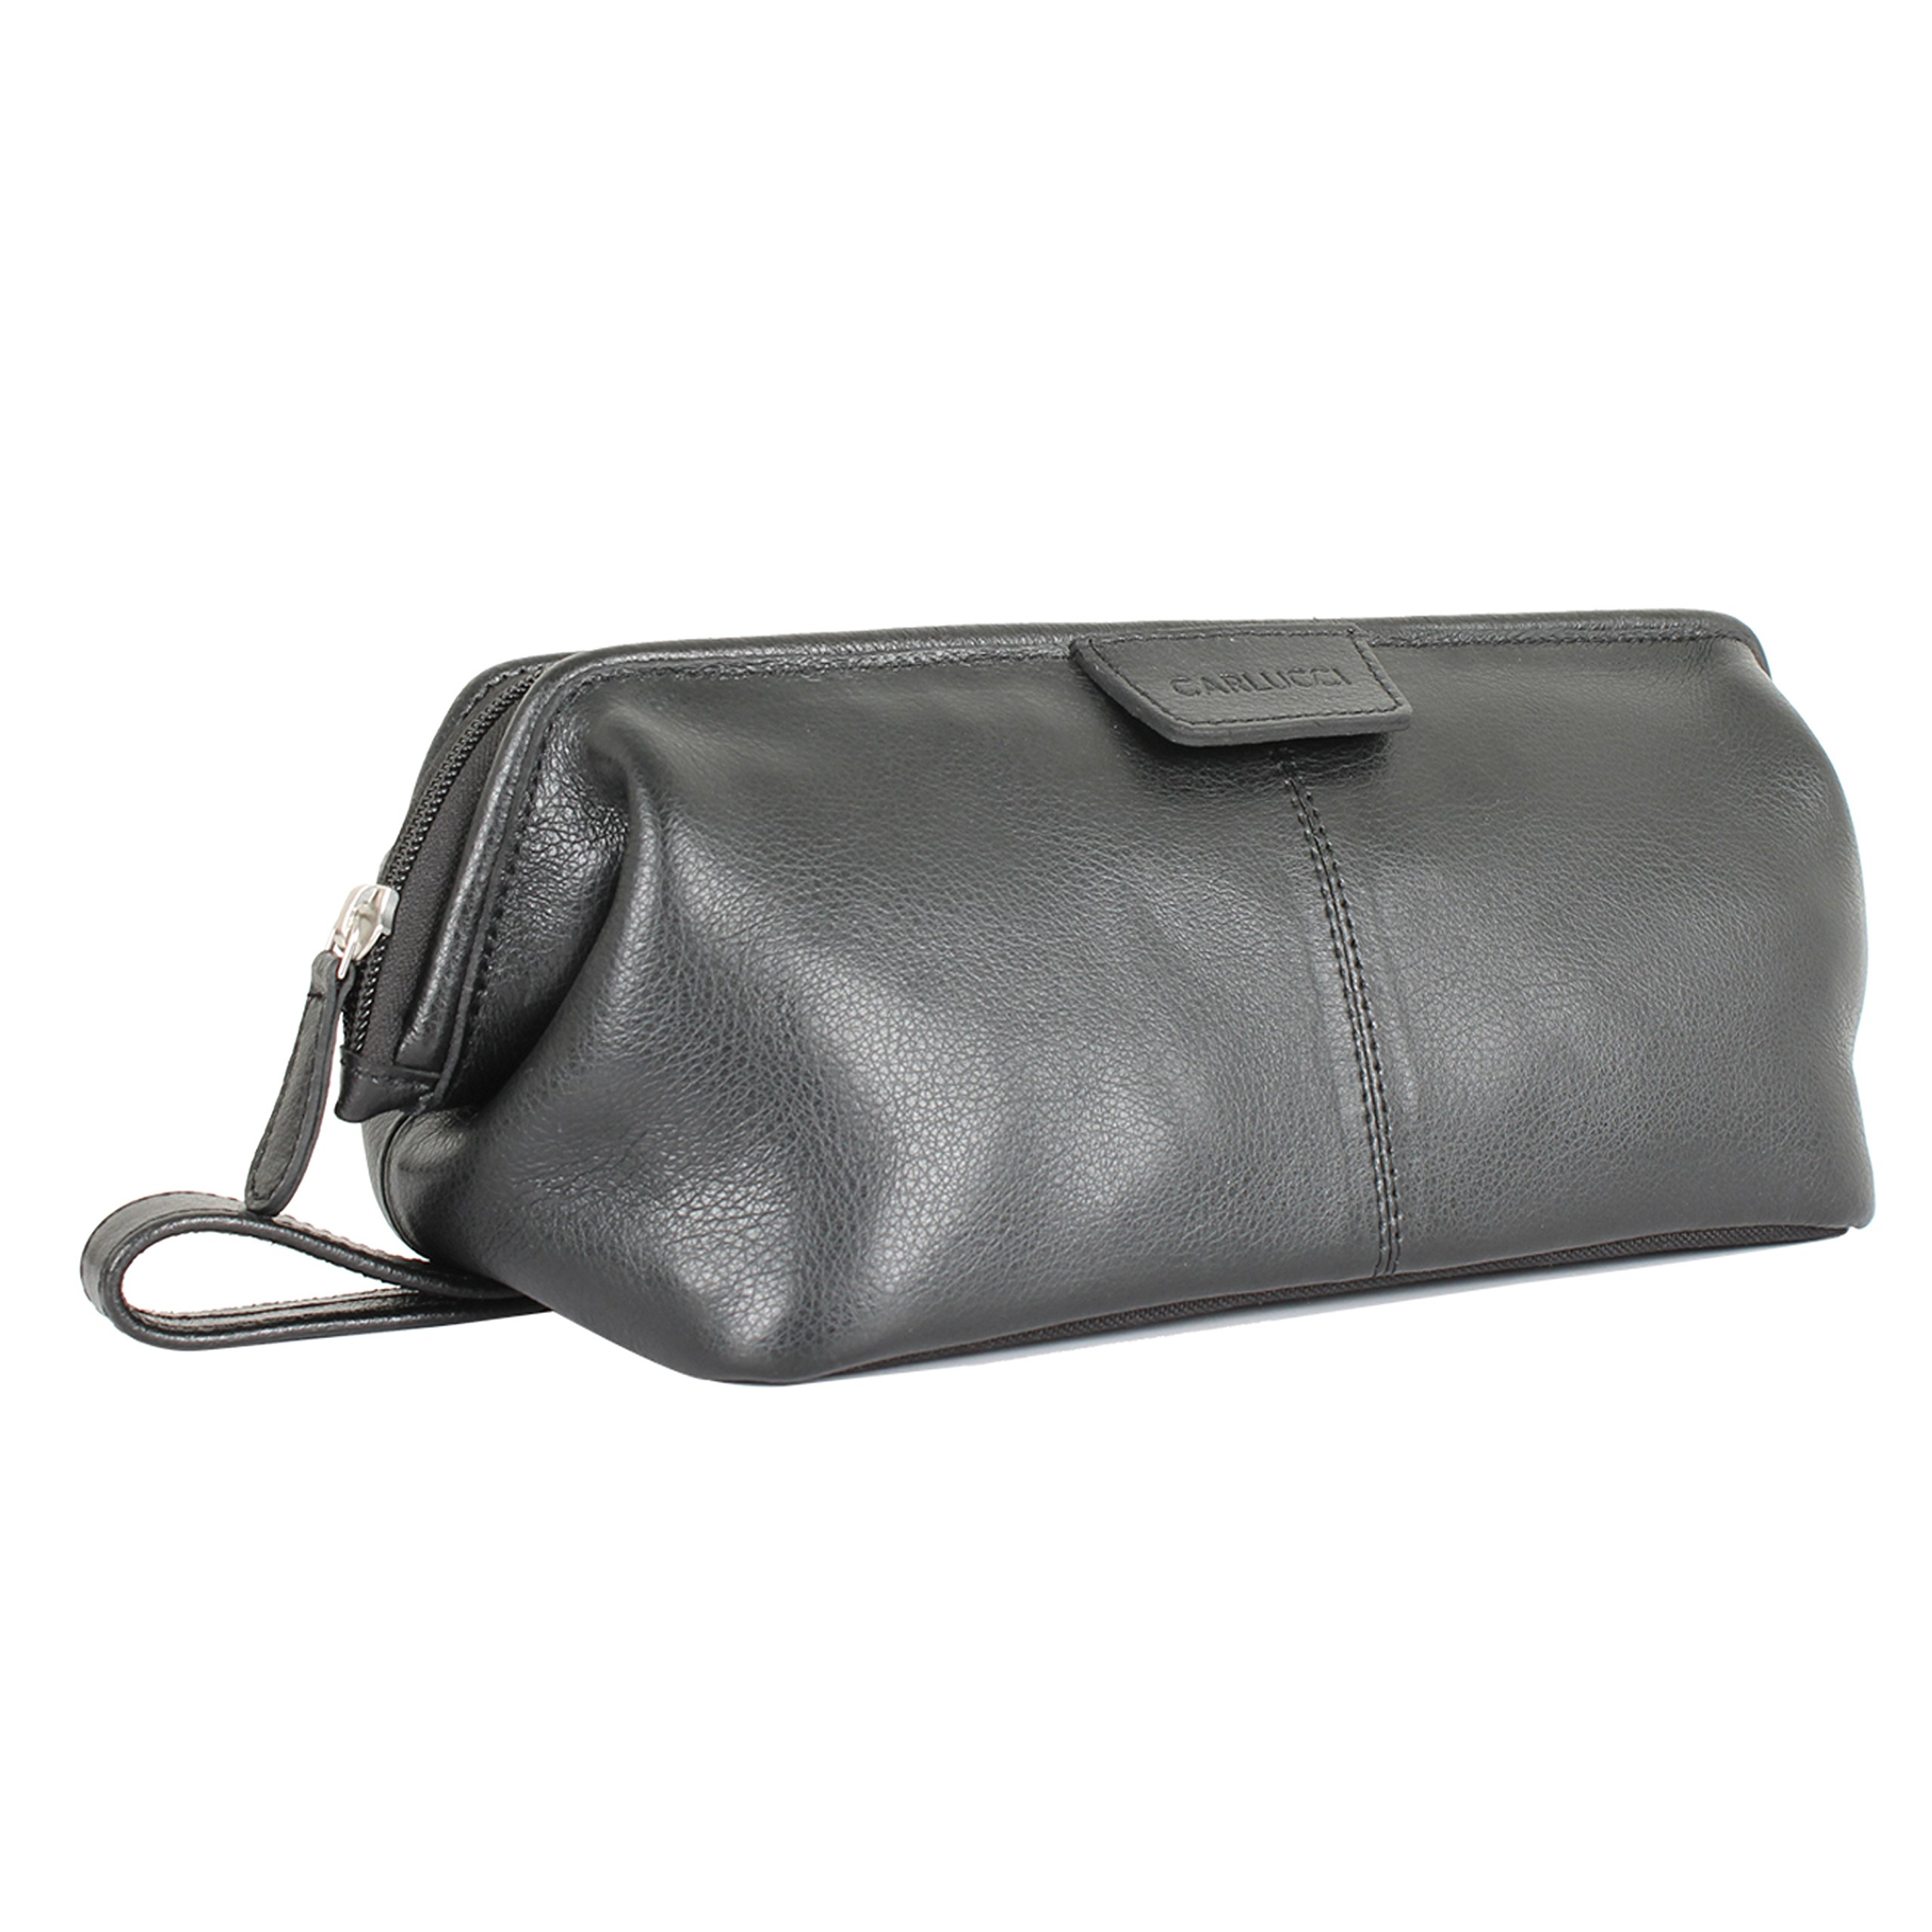 Carlucci Leather Original Leather Toiletry Bag for Men. Stylish Black Dopp Kit with Large Opening, Easy Durable Zipper, Rich Genuine Cowhide, Waterproof Bottom. In Black